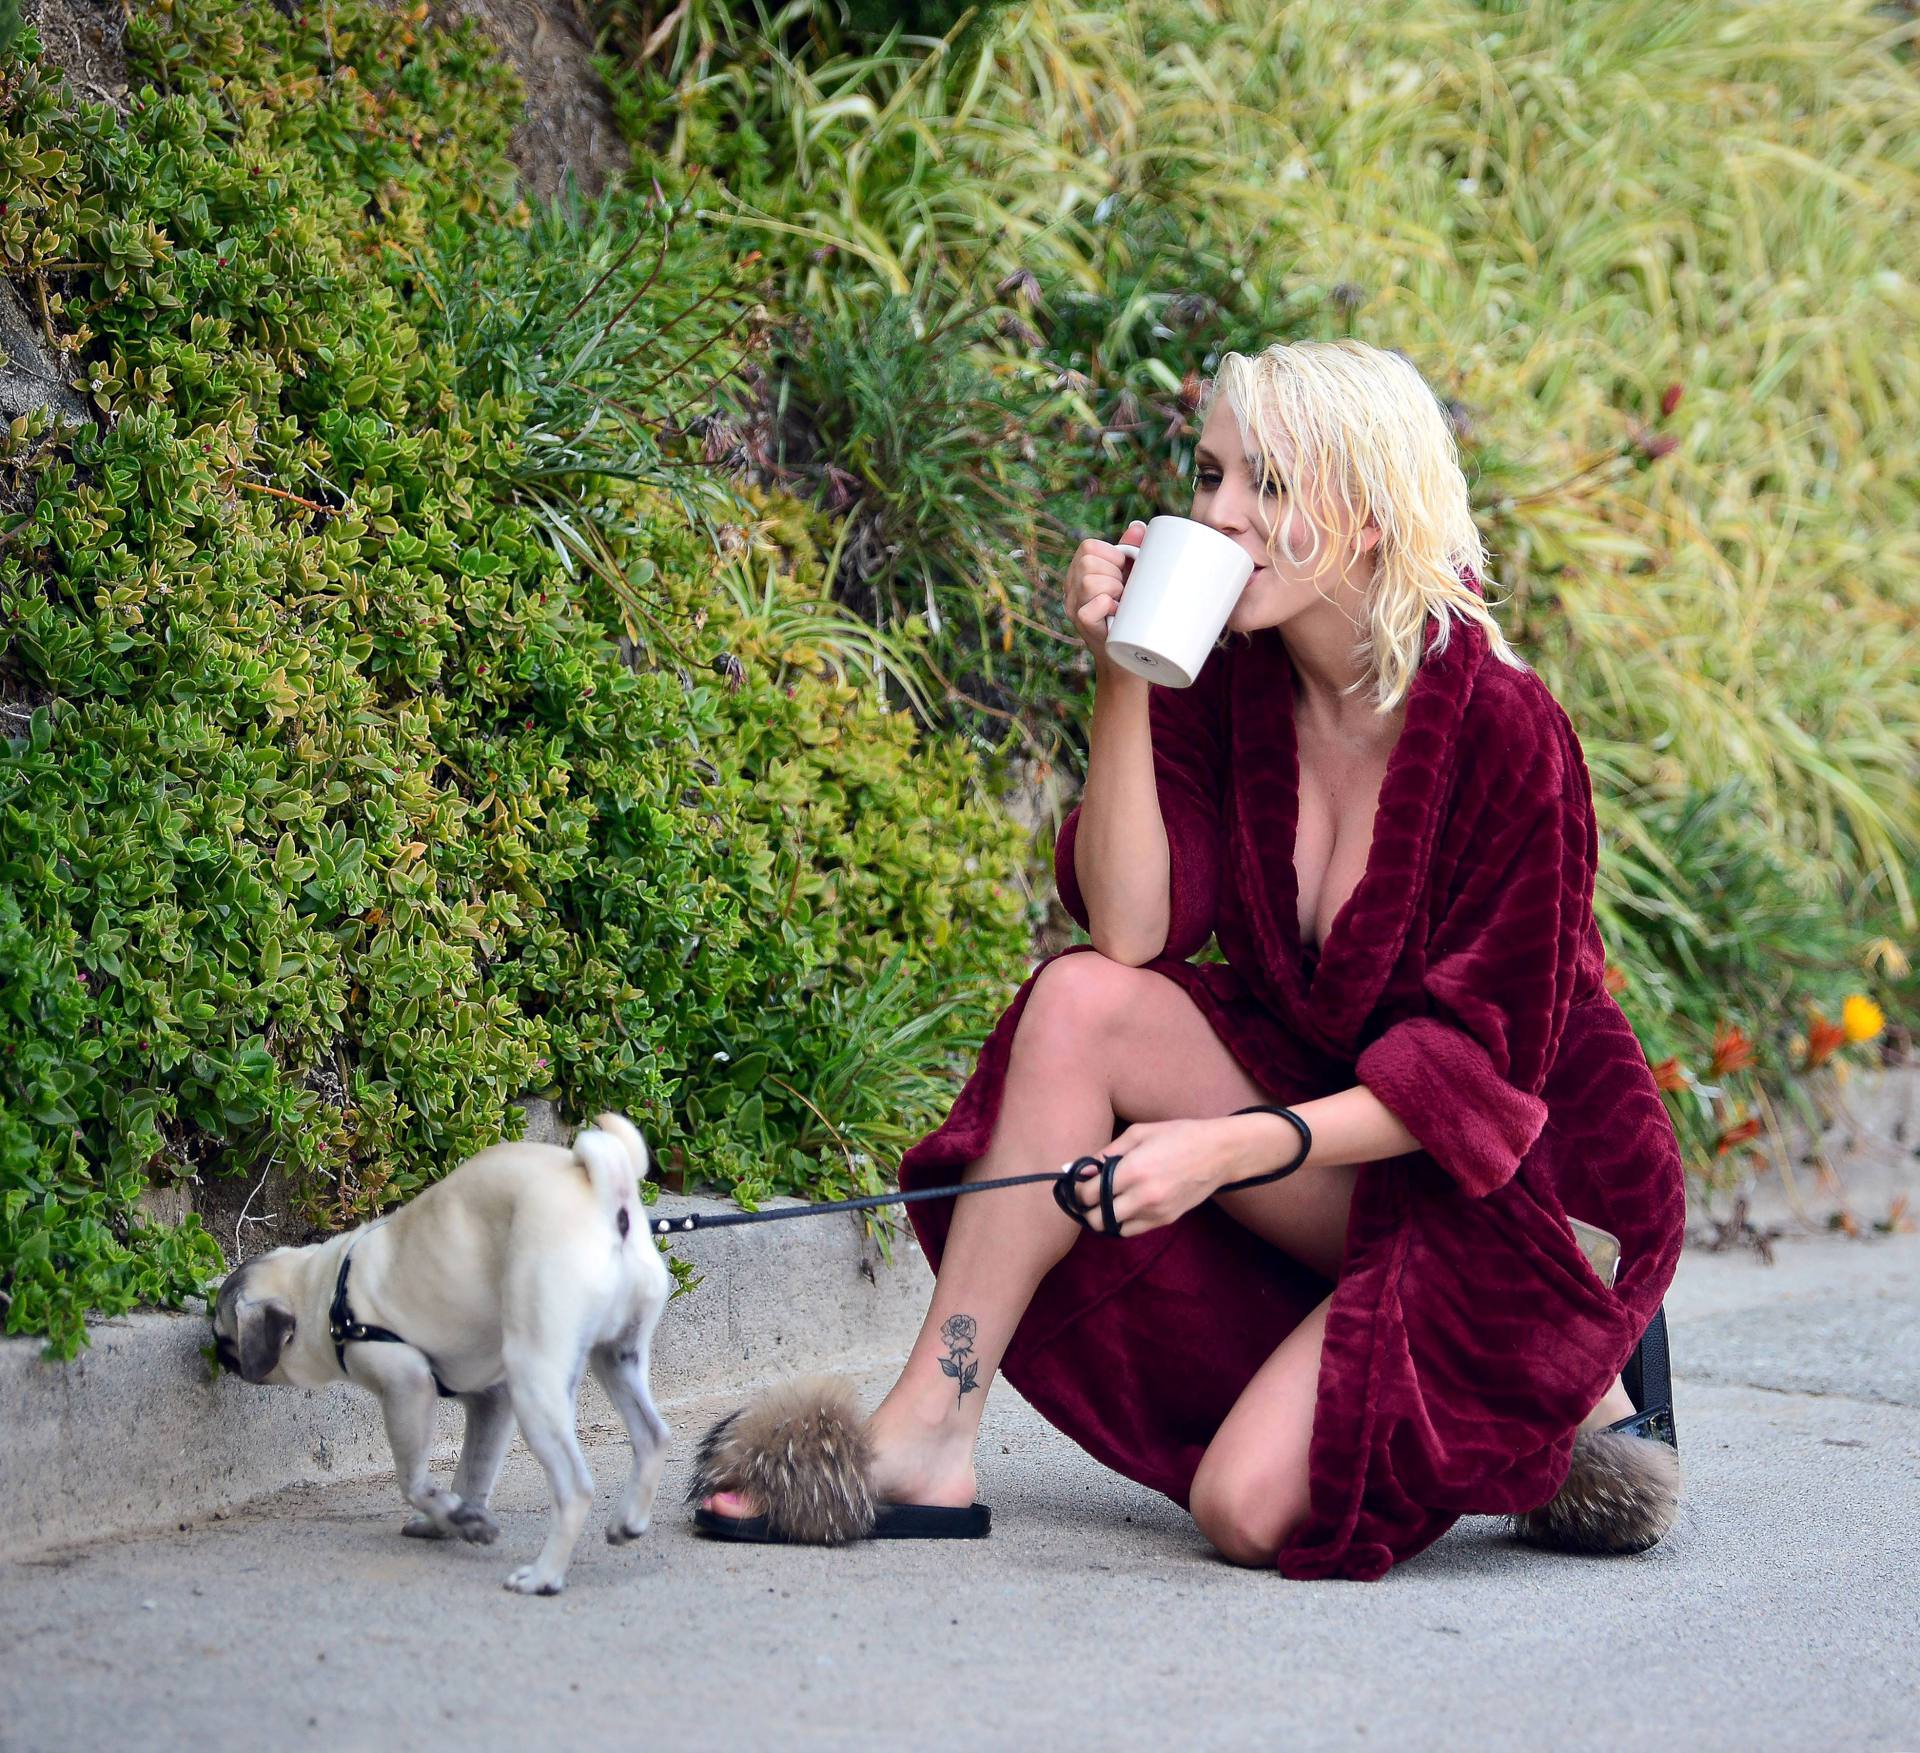 Courtney Stodden Sexy Boobs In Risque Robe Out In Los Angeles 0023